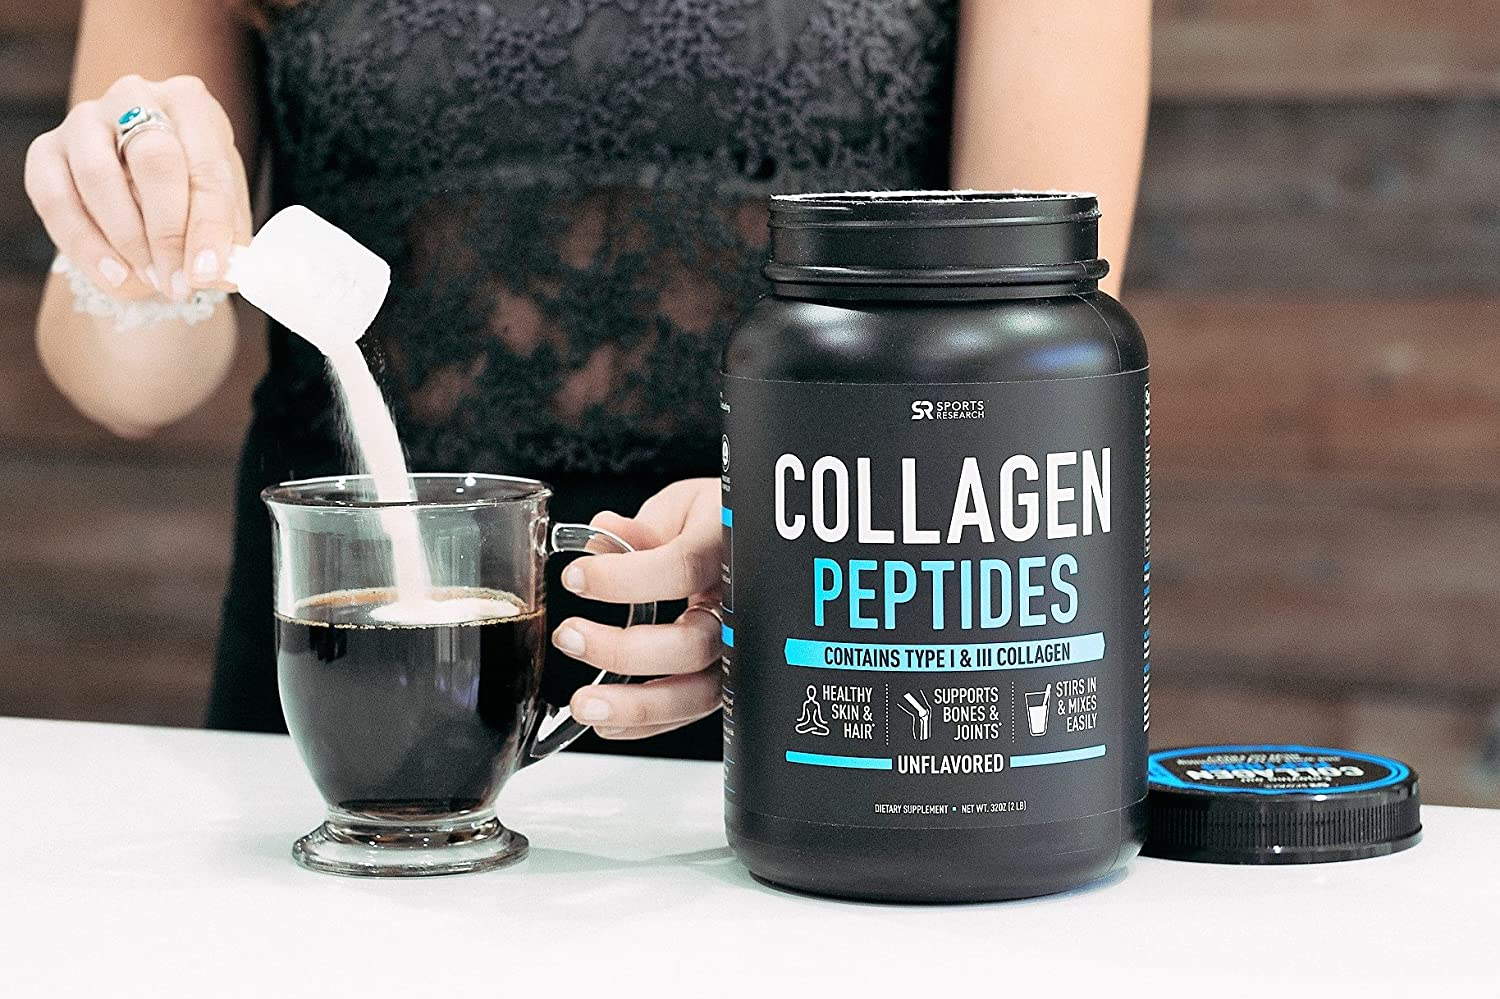 Collagen Peptides Powder XL Jar 32oz Grass-Fed, Certified Paleo Friendly, Non-GMO and Gluten Free – Unflavored